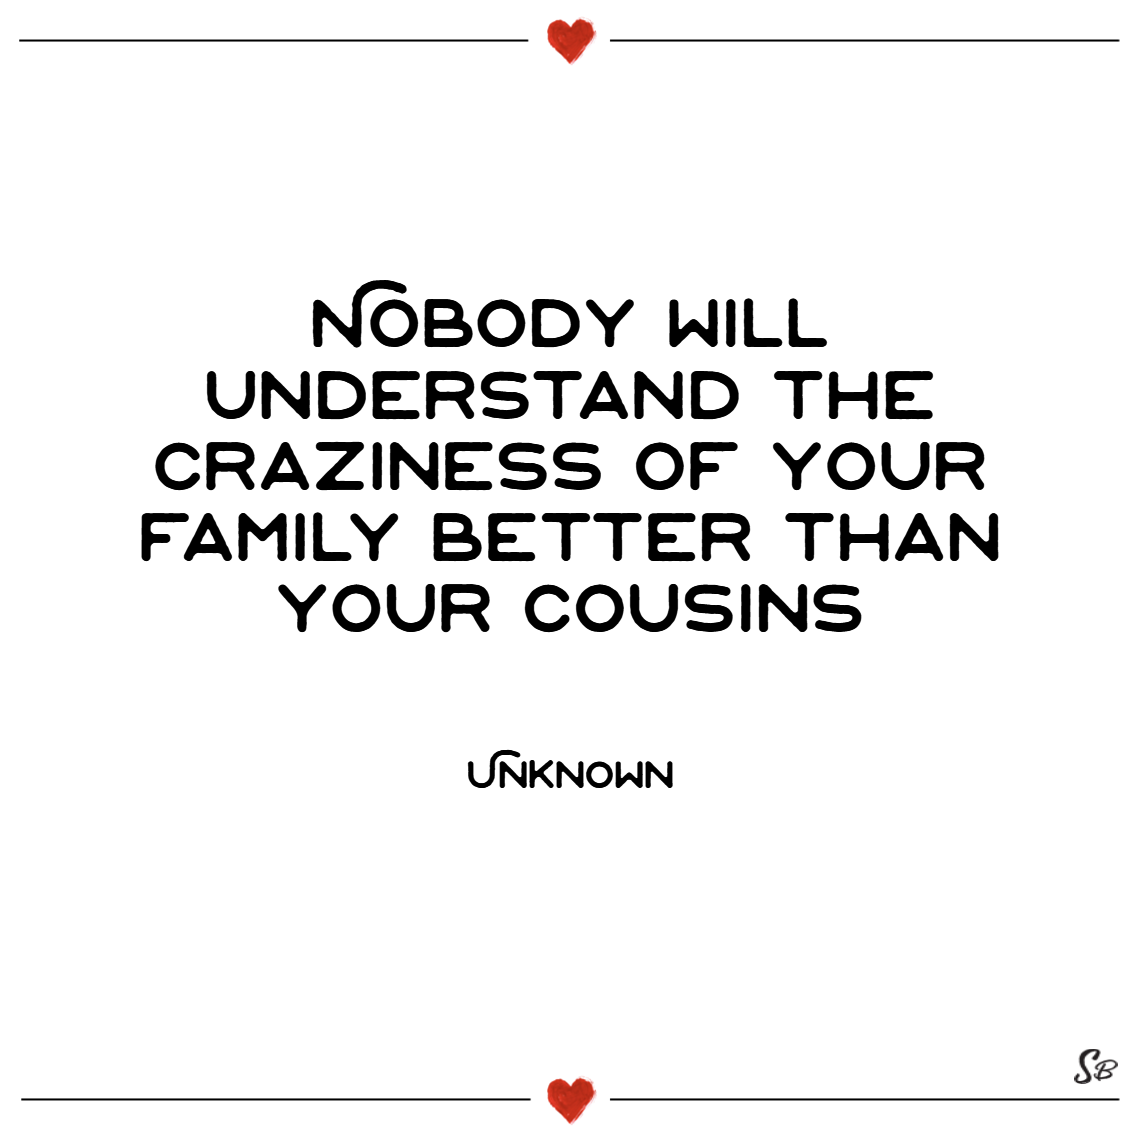 Nobody will understand the craziness of your family better than your cousins. unknown